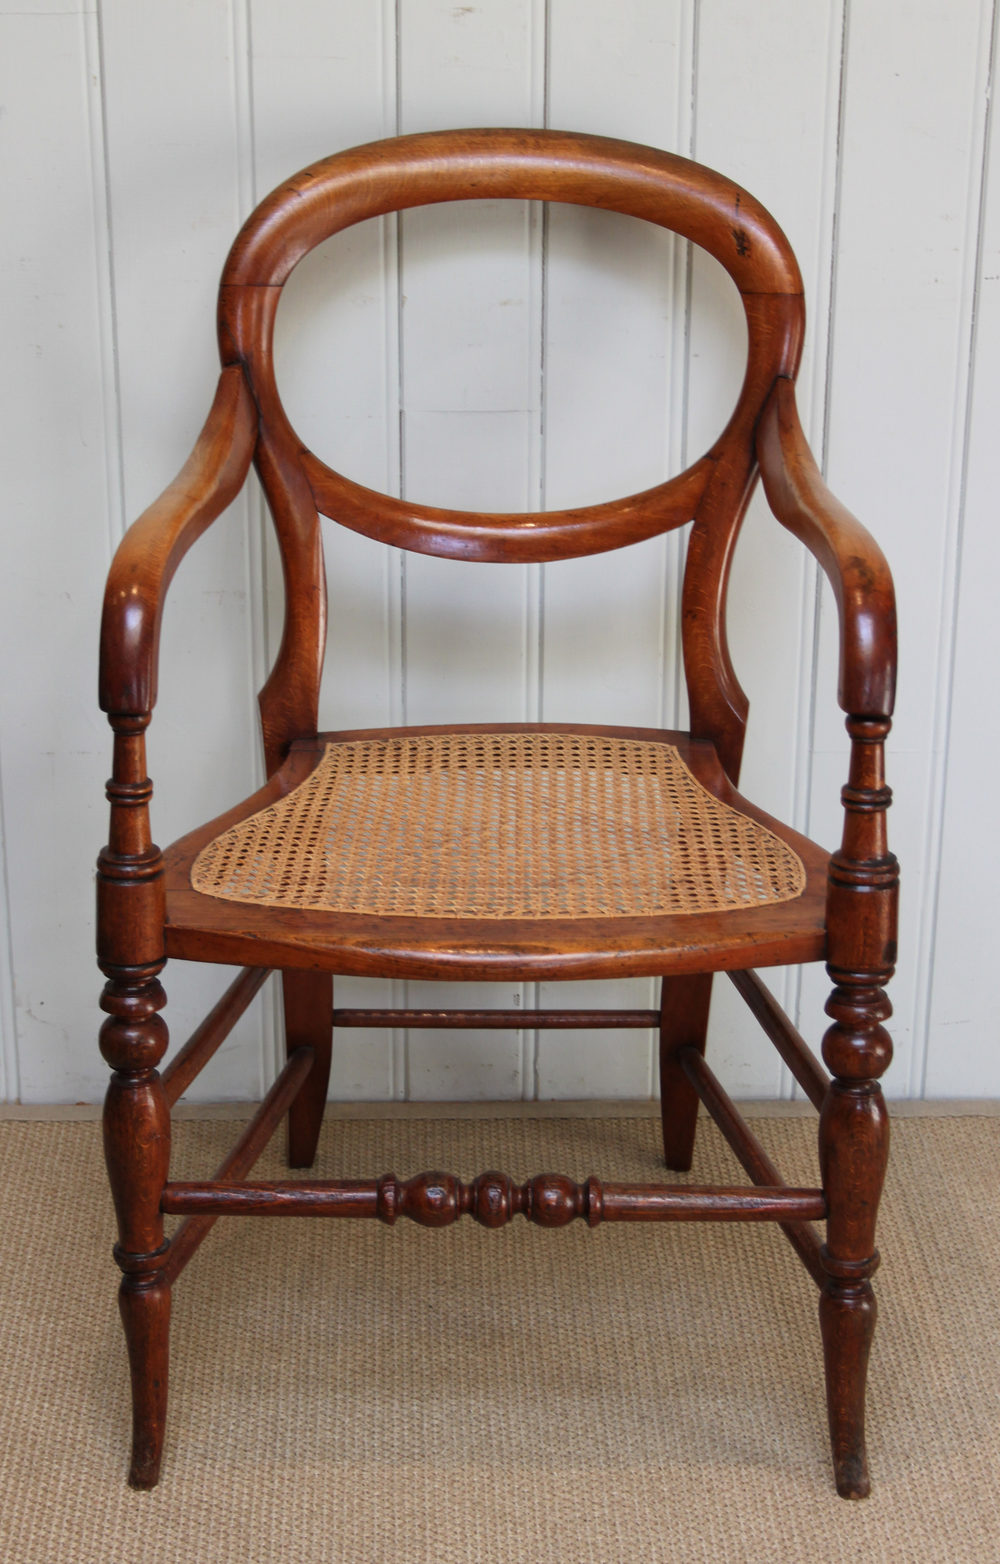 Victorian Cane Seated Balloon Back Chair - Antiques Atlas